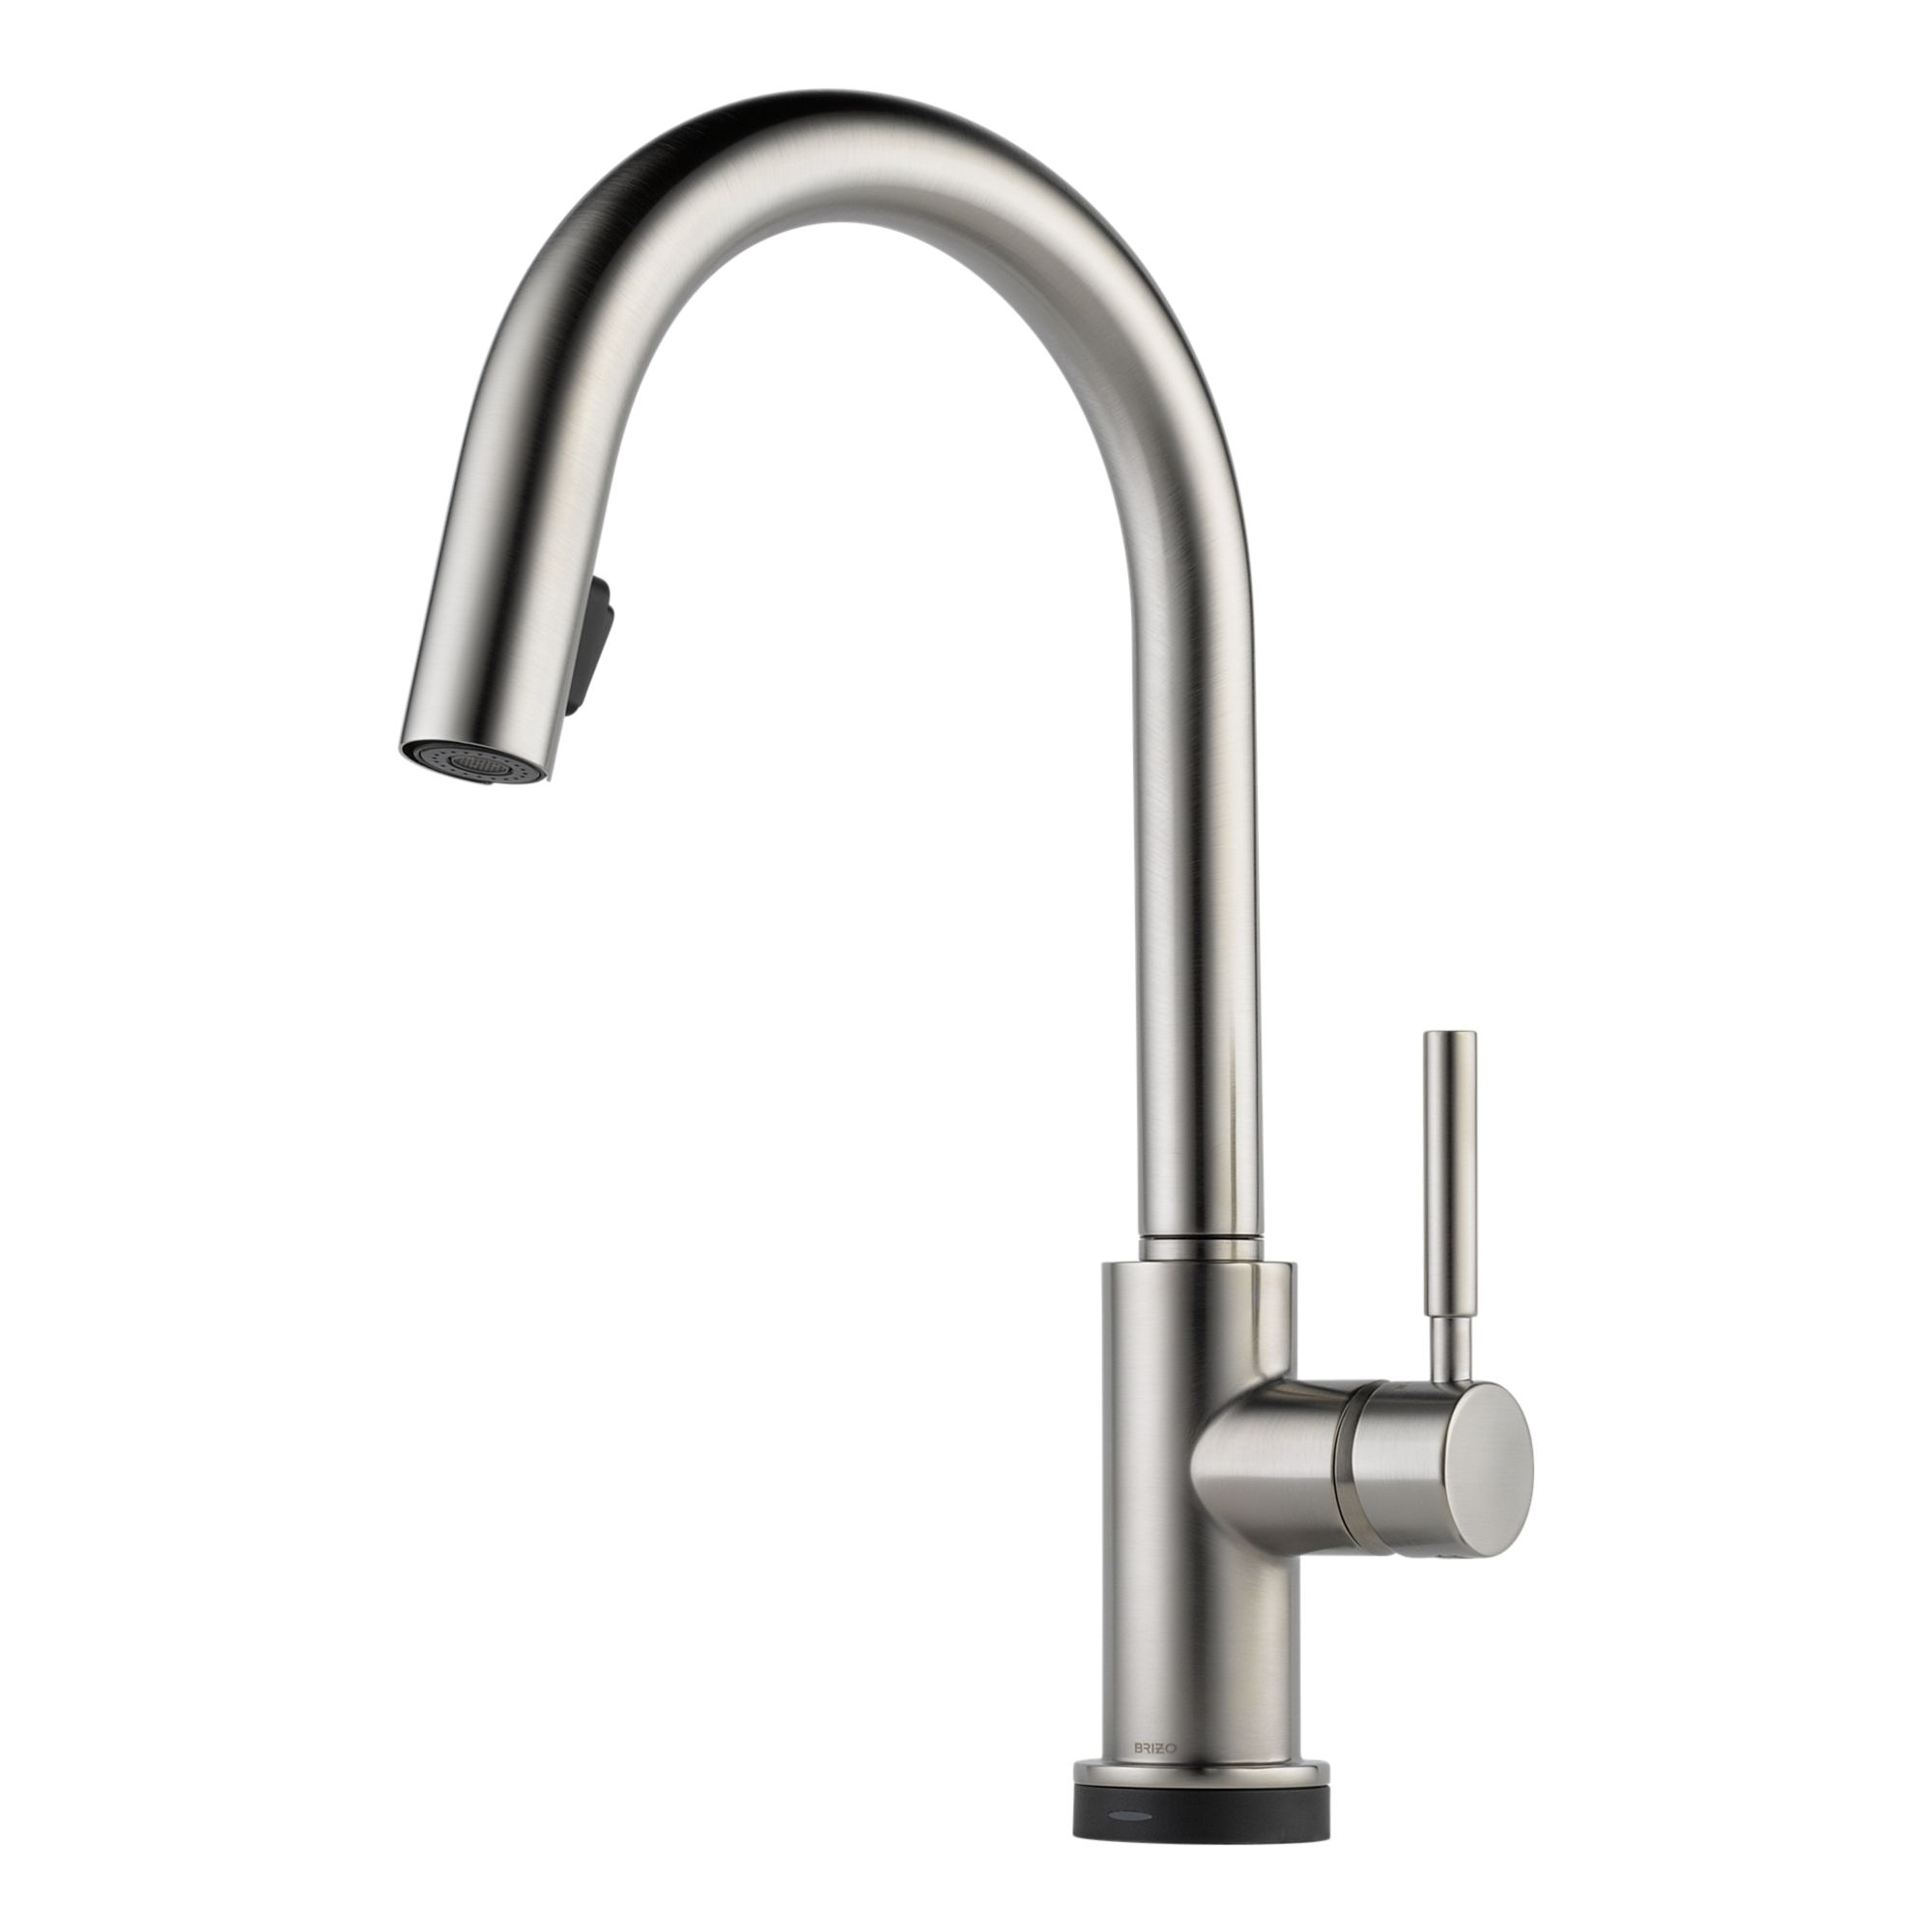 Brizo Kitchen Faucets | One Touch Faucet | 2 Hole Kitchen Faucet